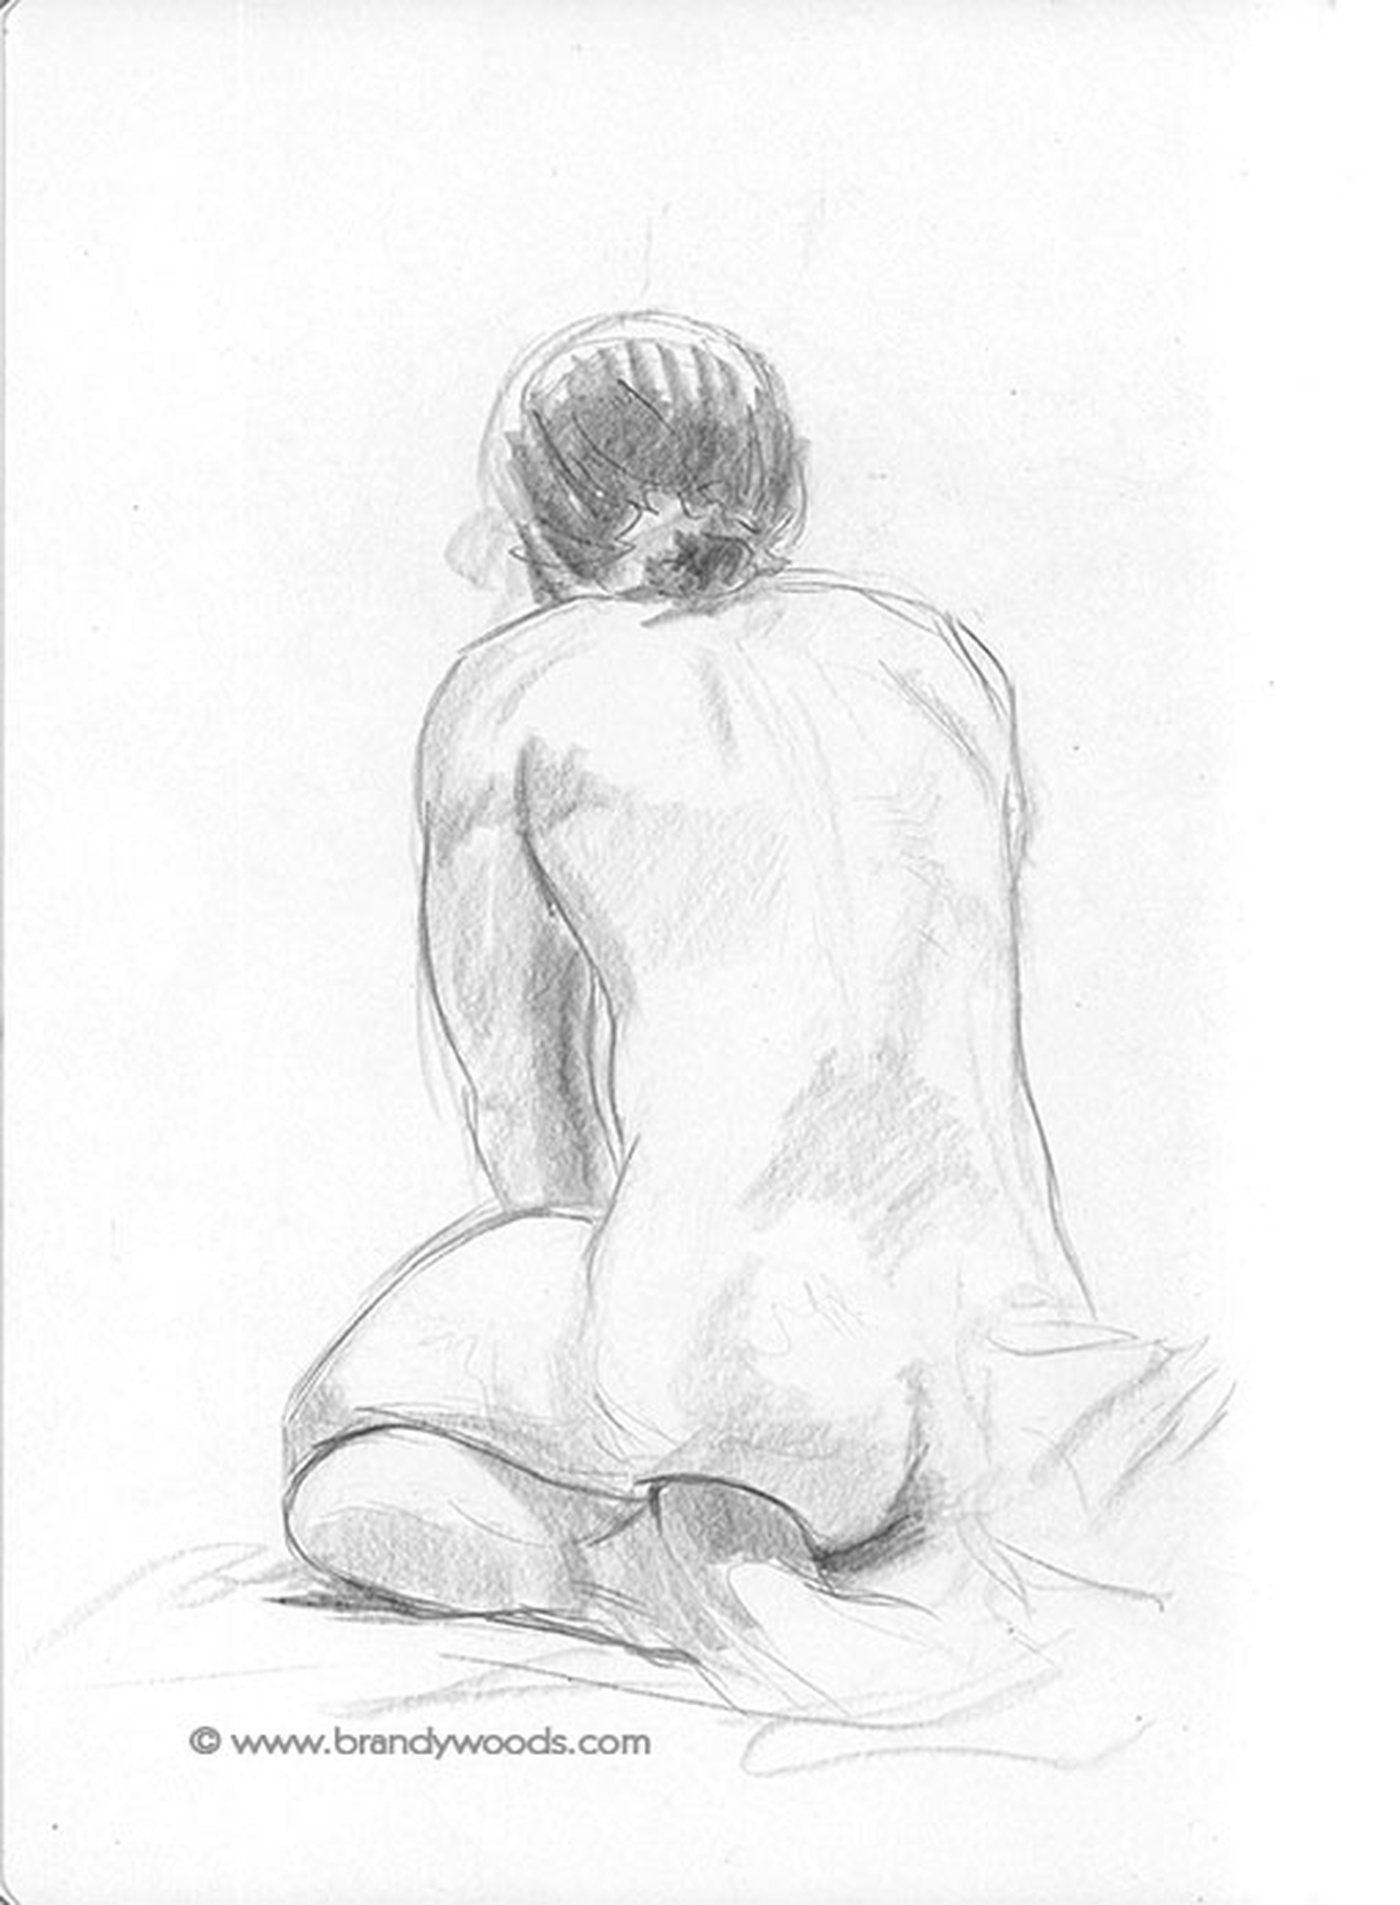 Brandy Woods - Life Drawing